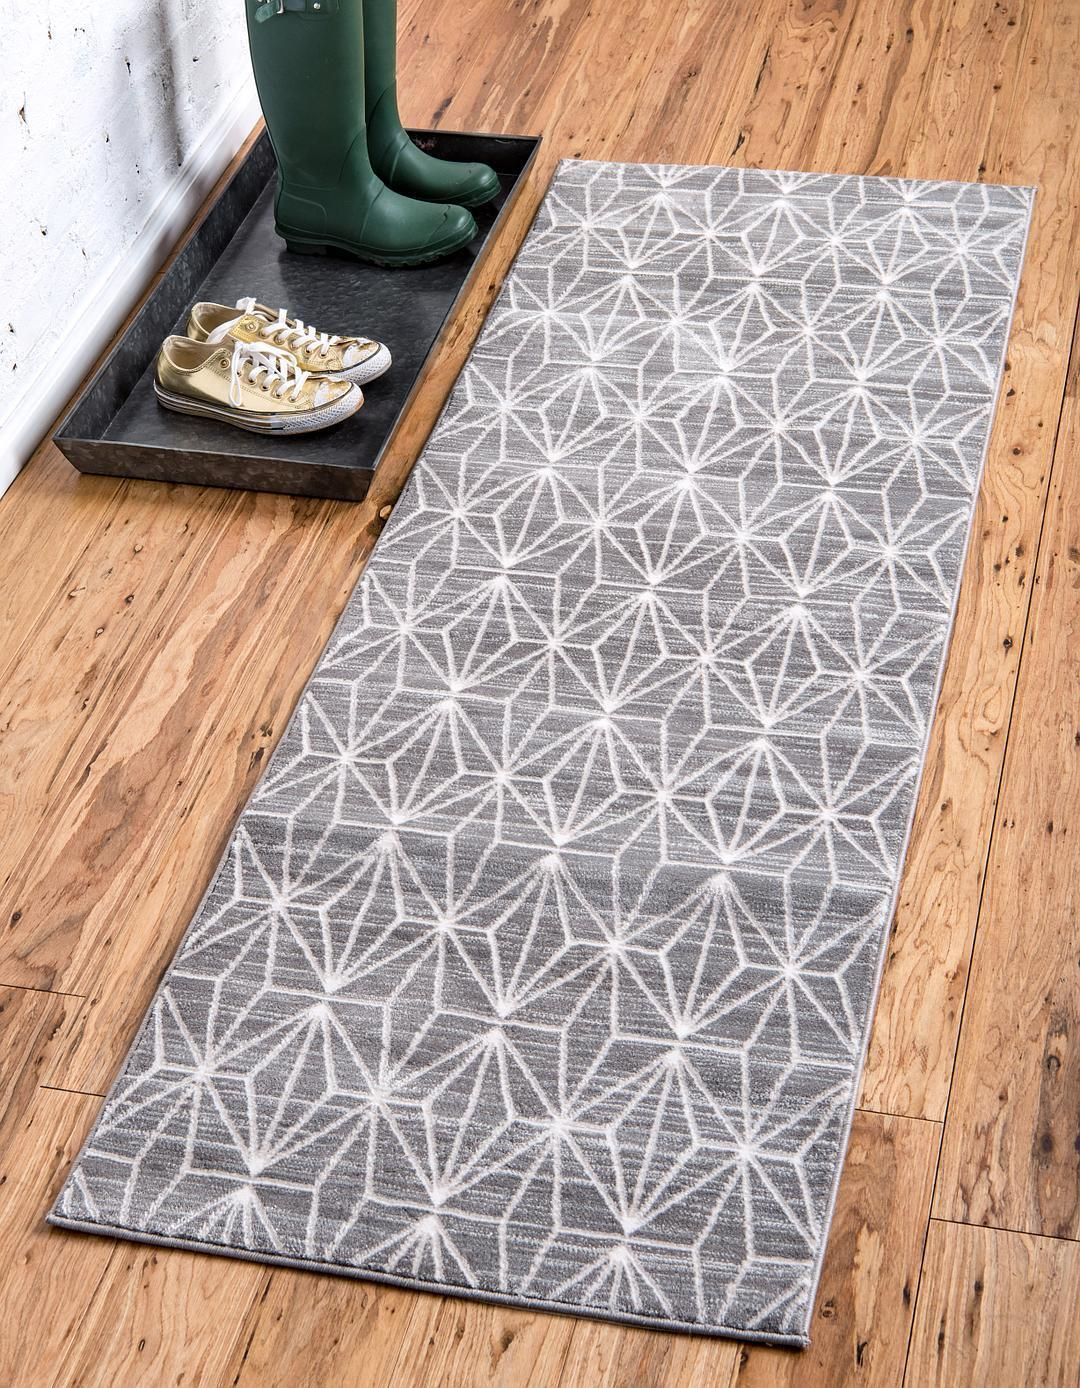 Gray Jill Zarin 2 2 X 6 Uptown Collection Runner Rug Area Rugs